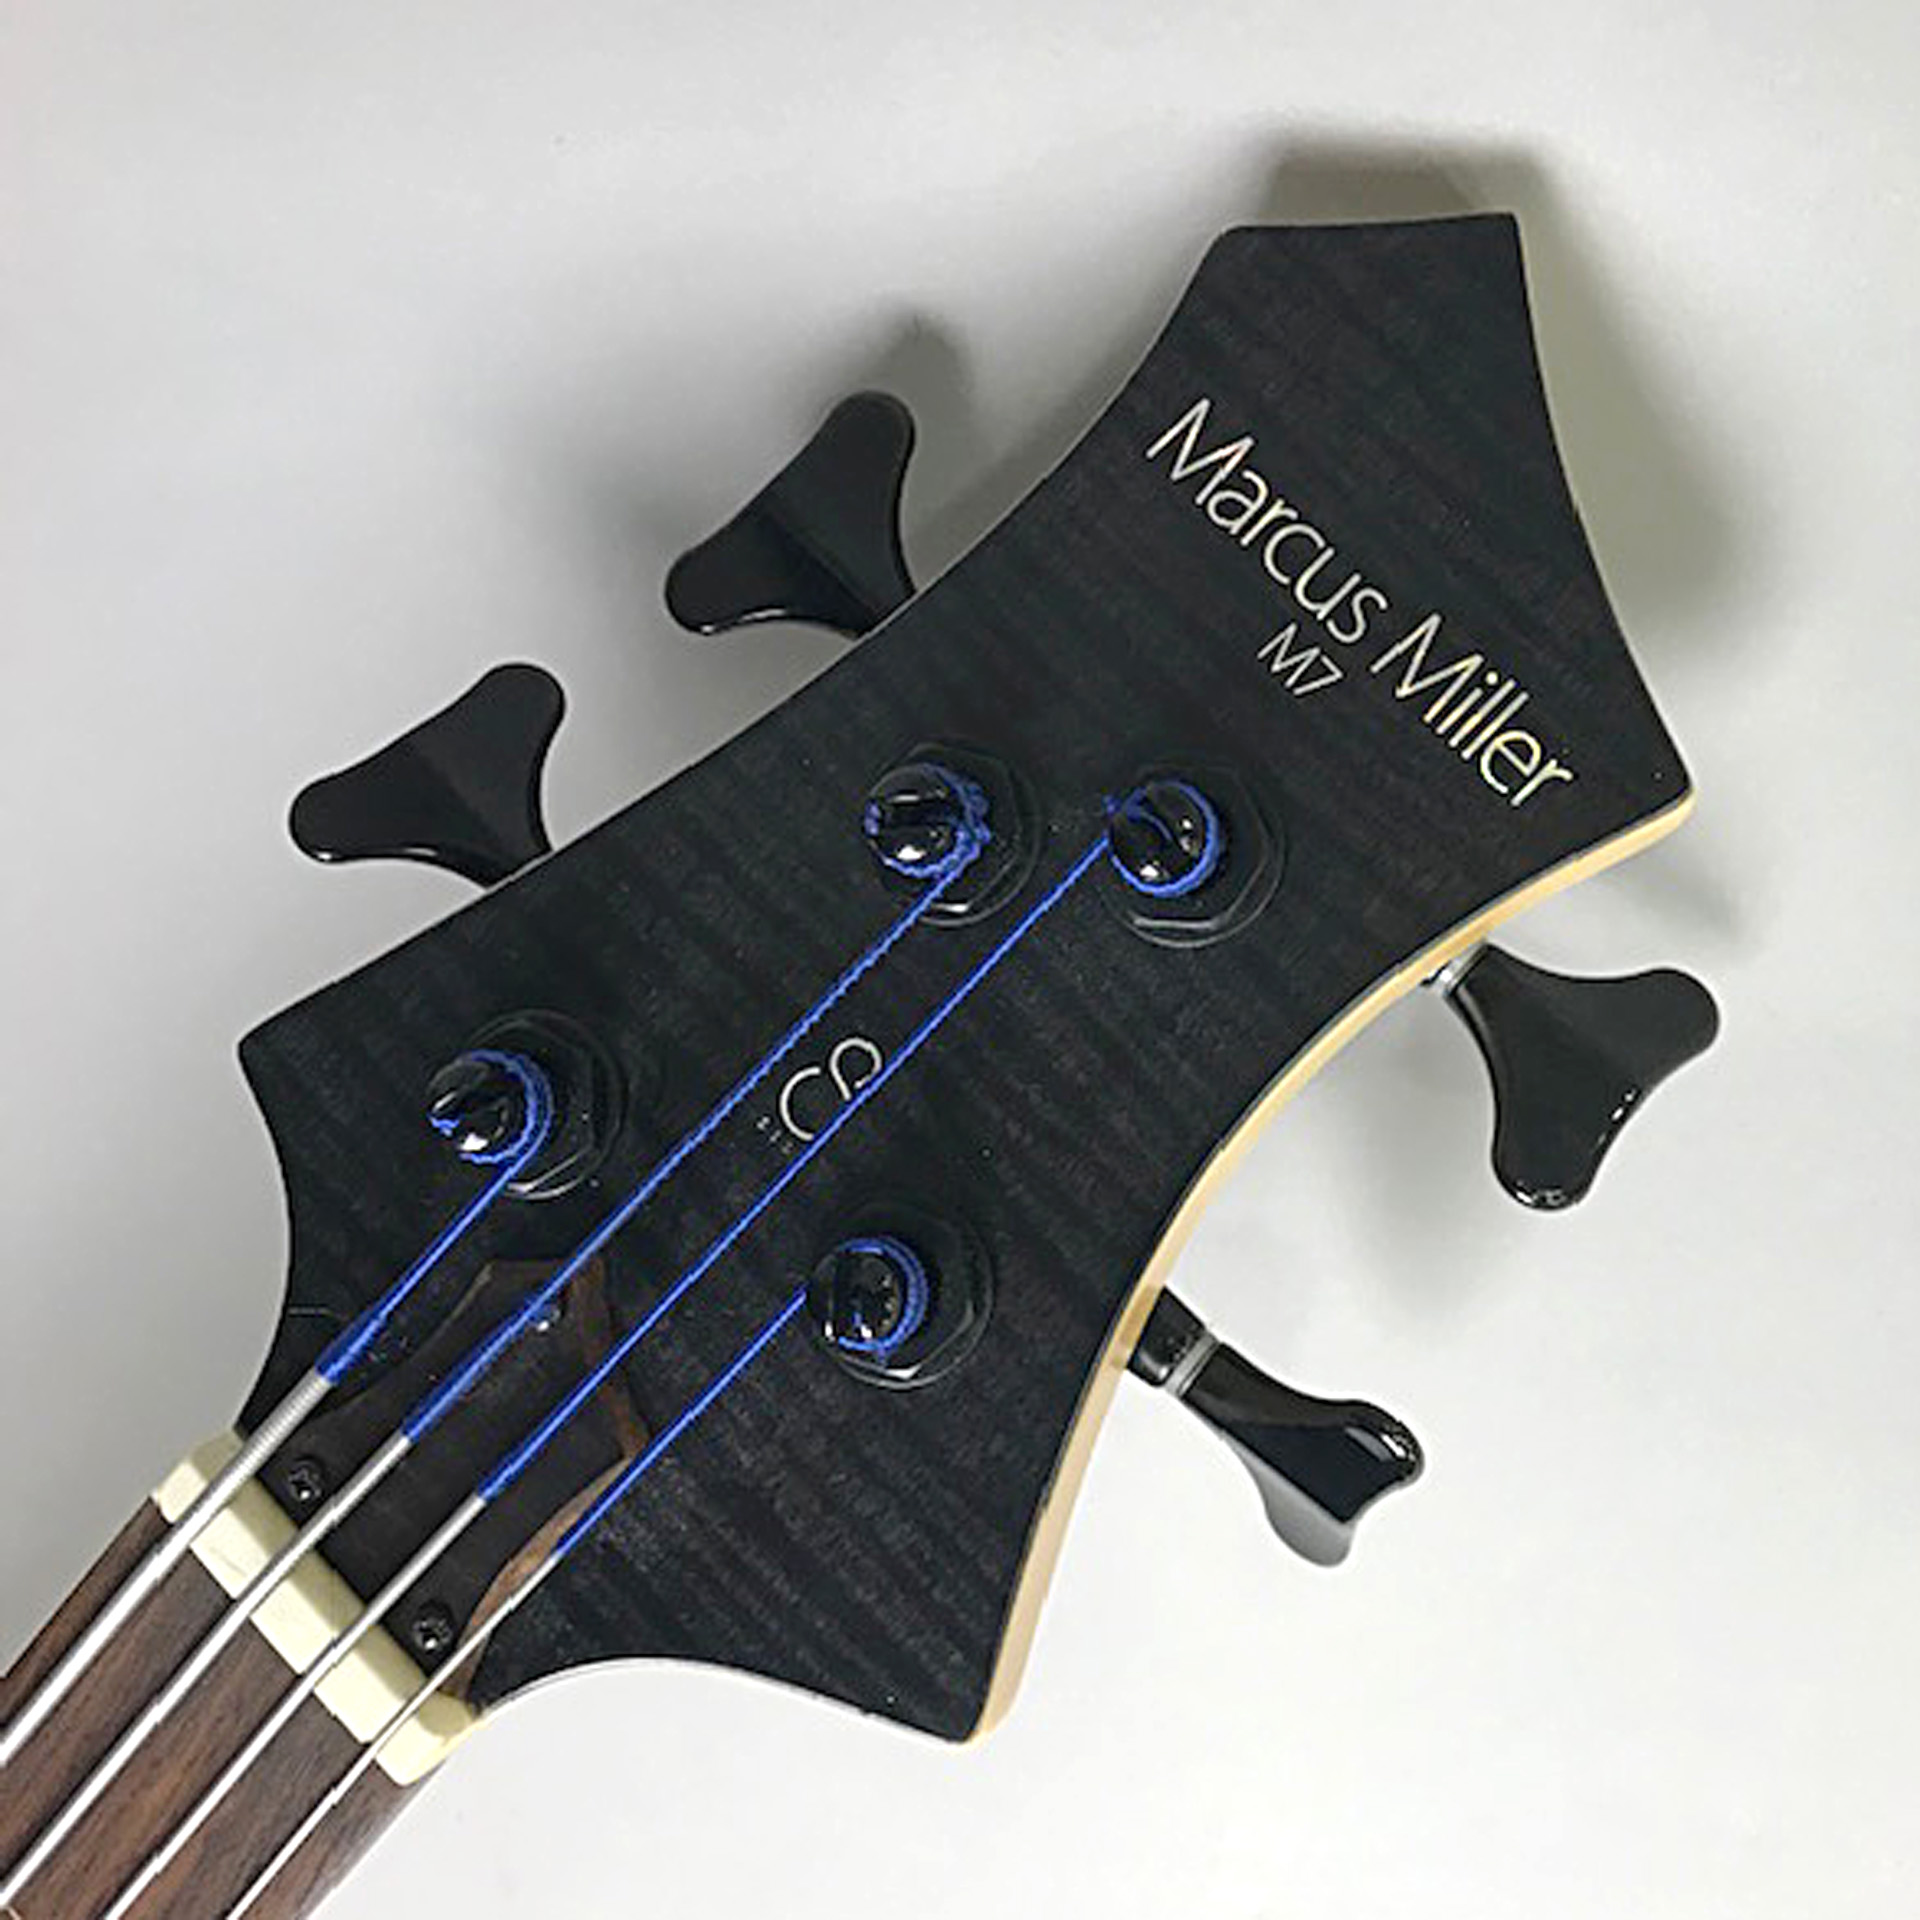 M7 4ST SwanpAsh+Maple Fretless(S/N:16360274)のヘッド画像